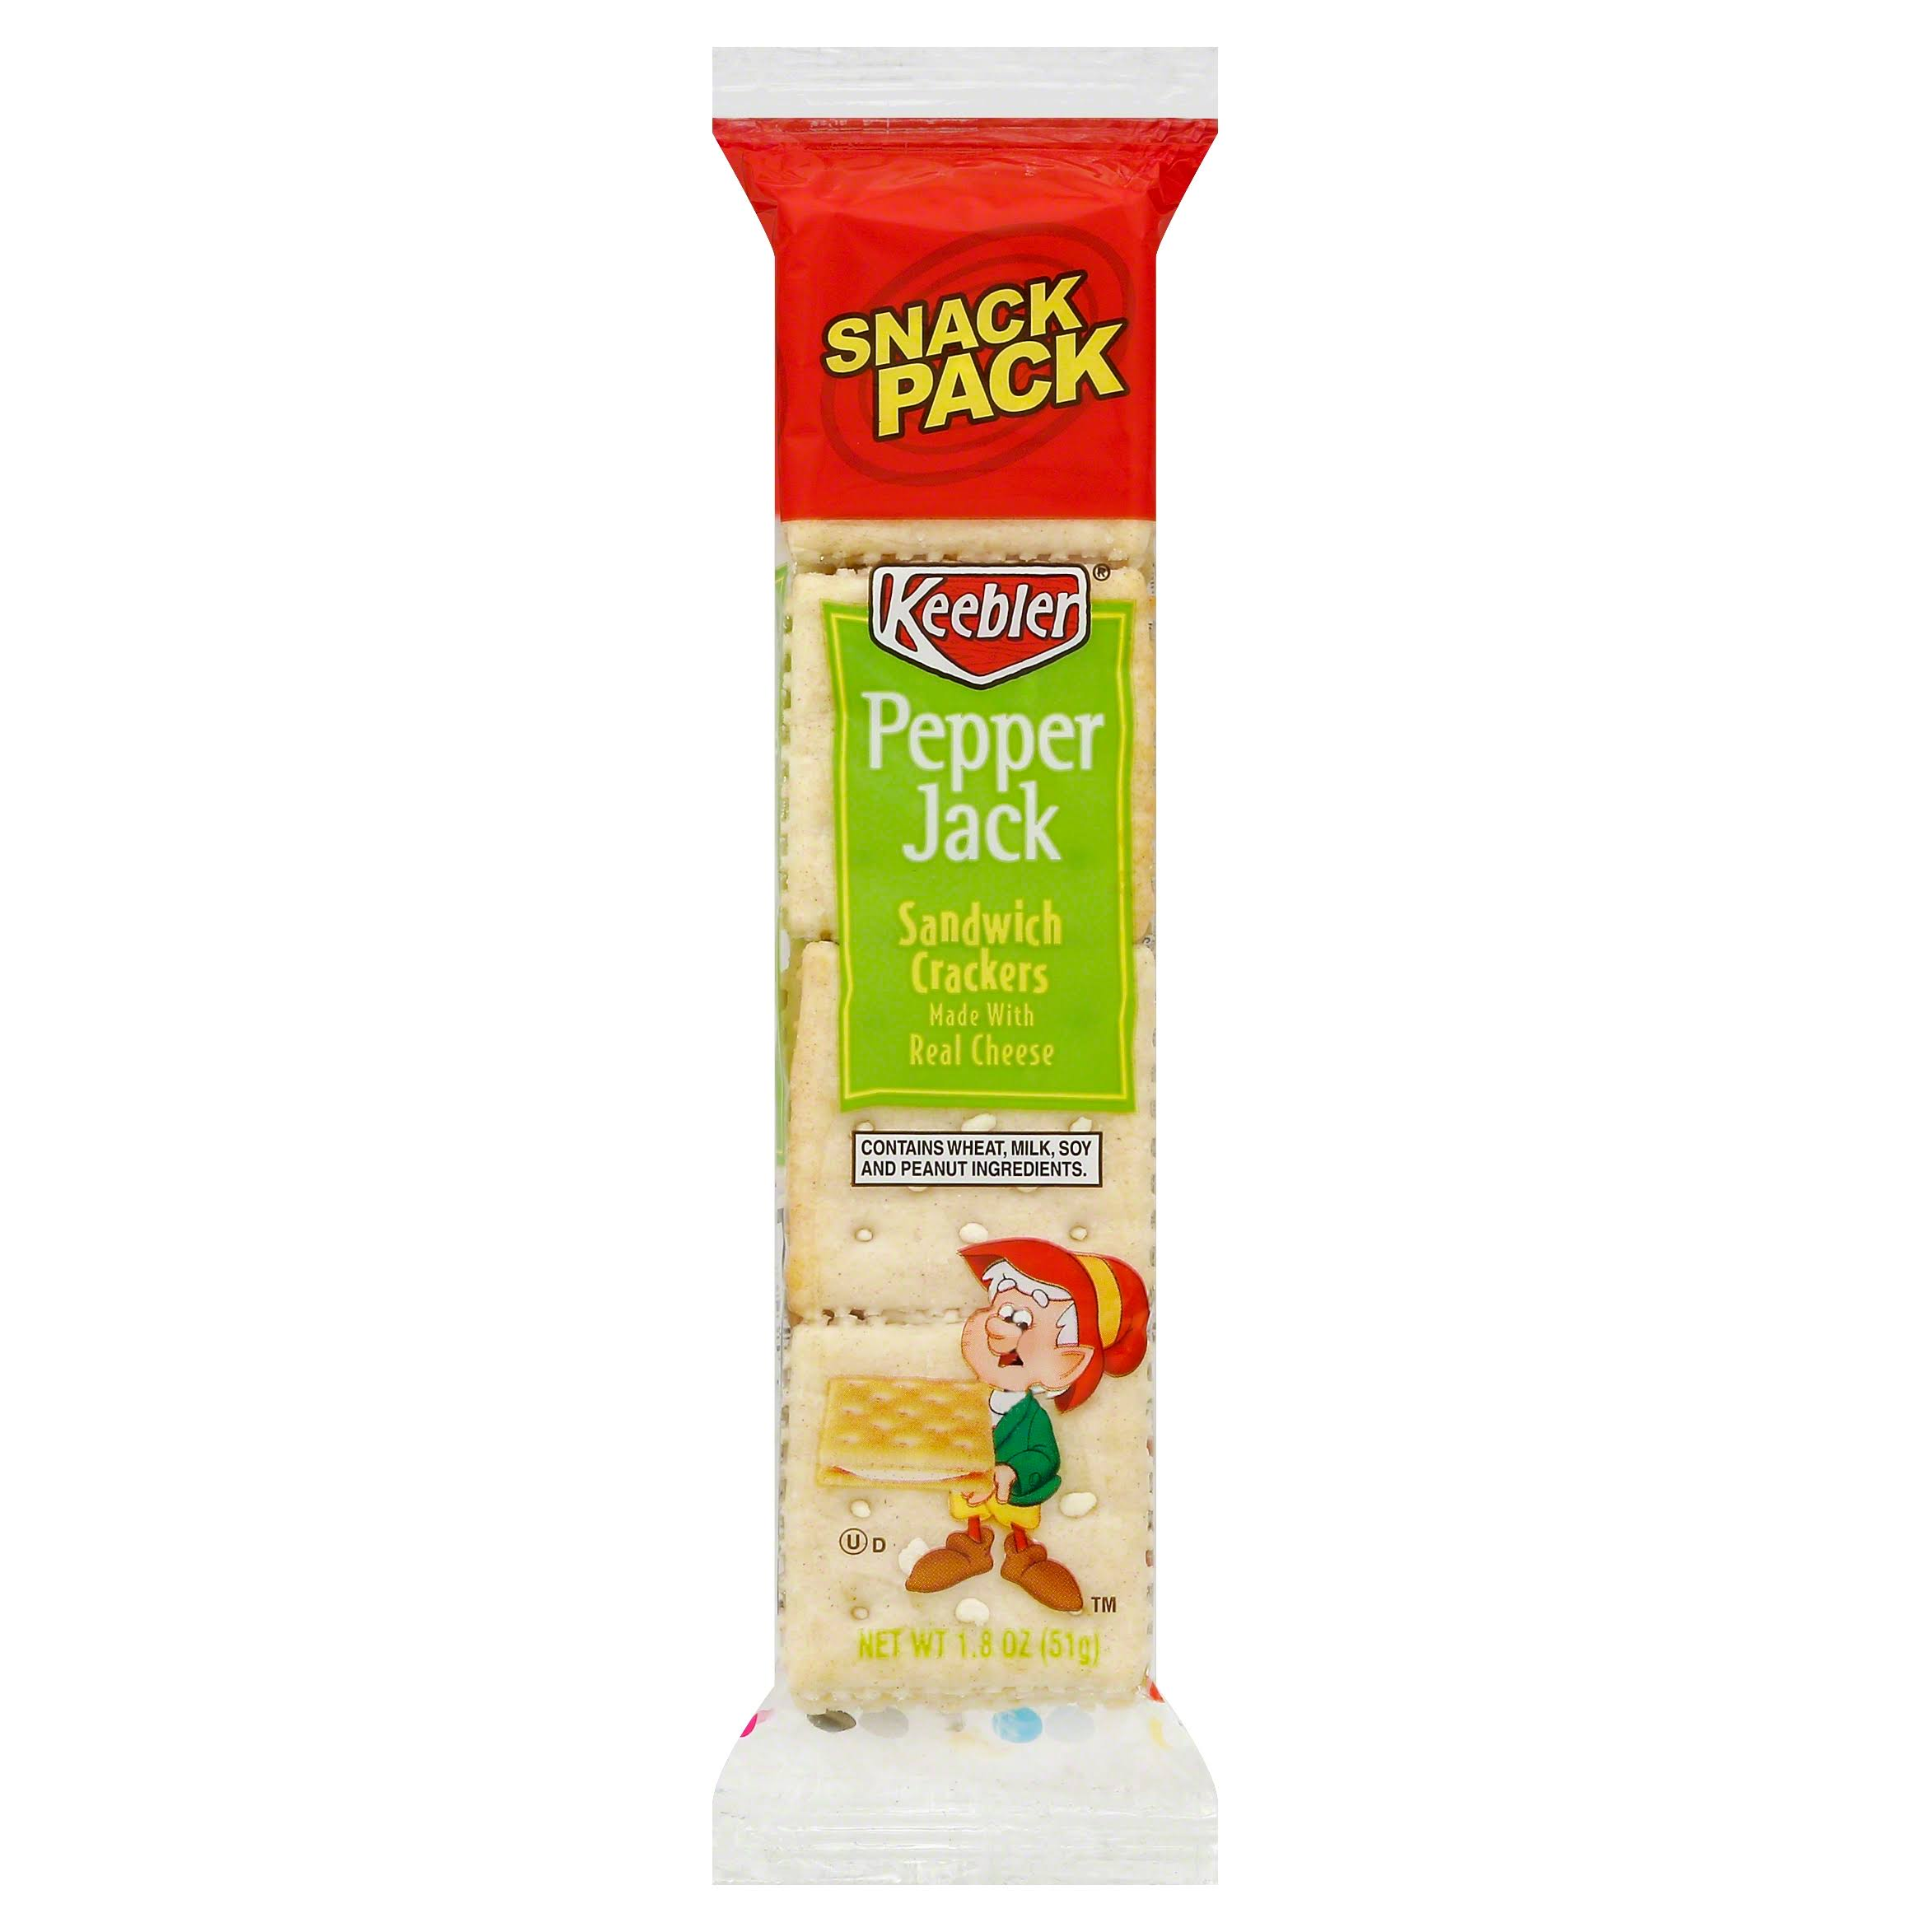 Keebler Pepper Jack Sandwich Crackers